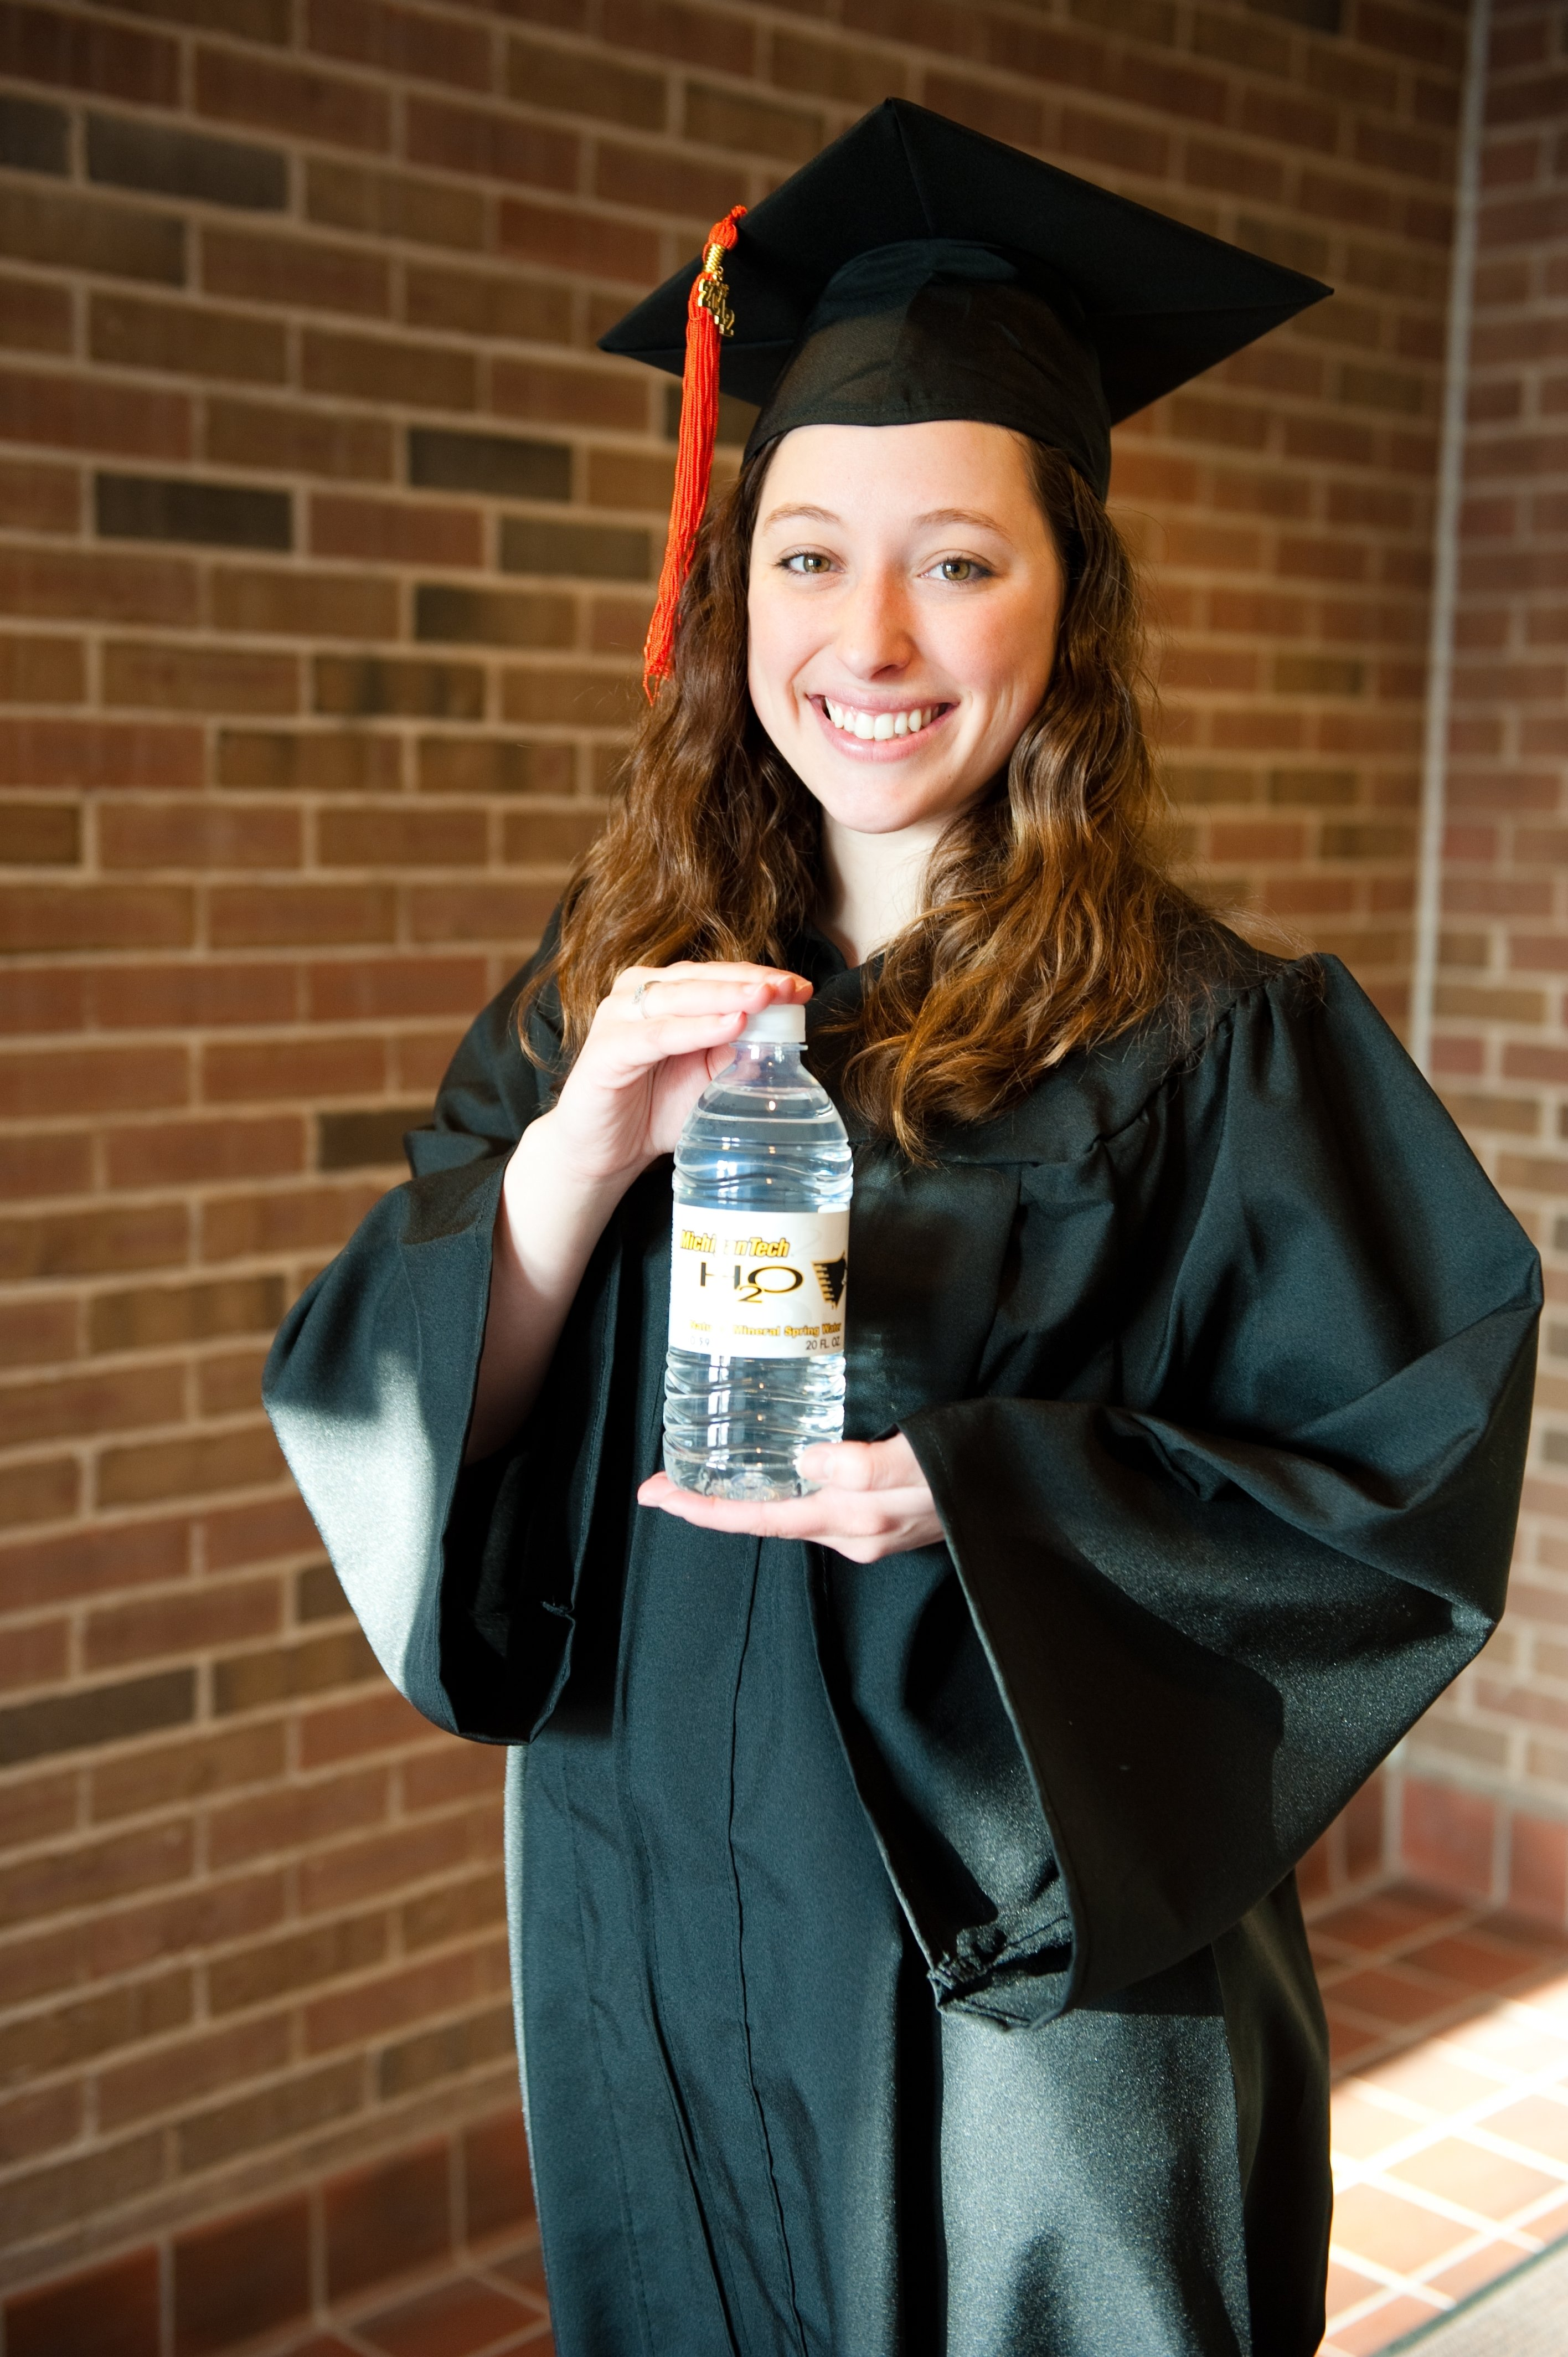 10 Gorgeous Cap And Gown Picture Ideas graduation caps and gowns made from recycled bottles grist 2020